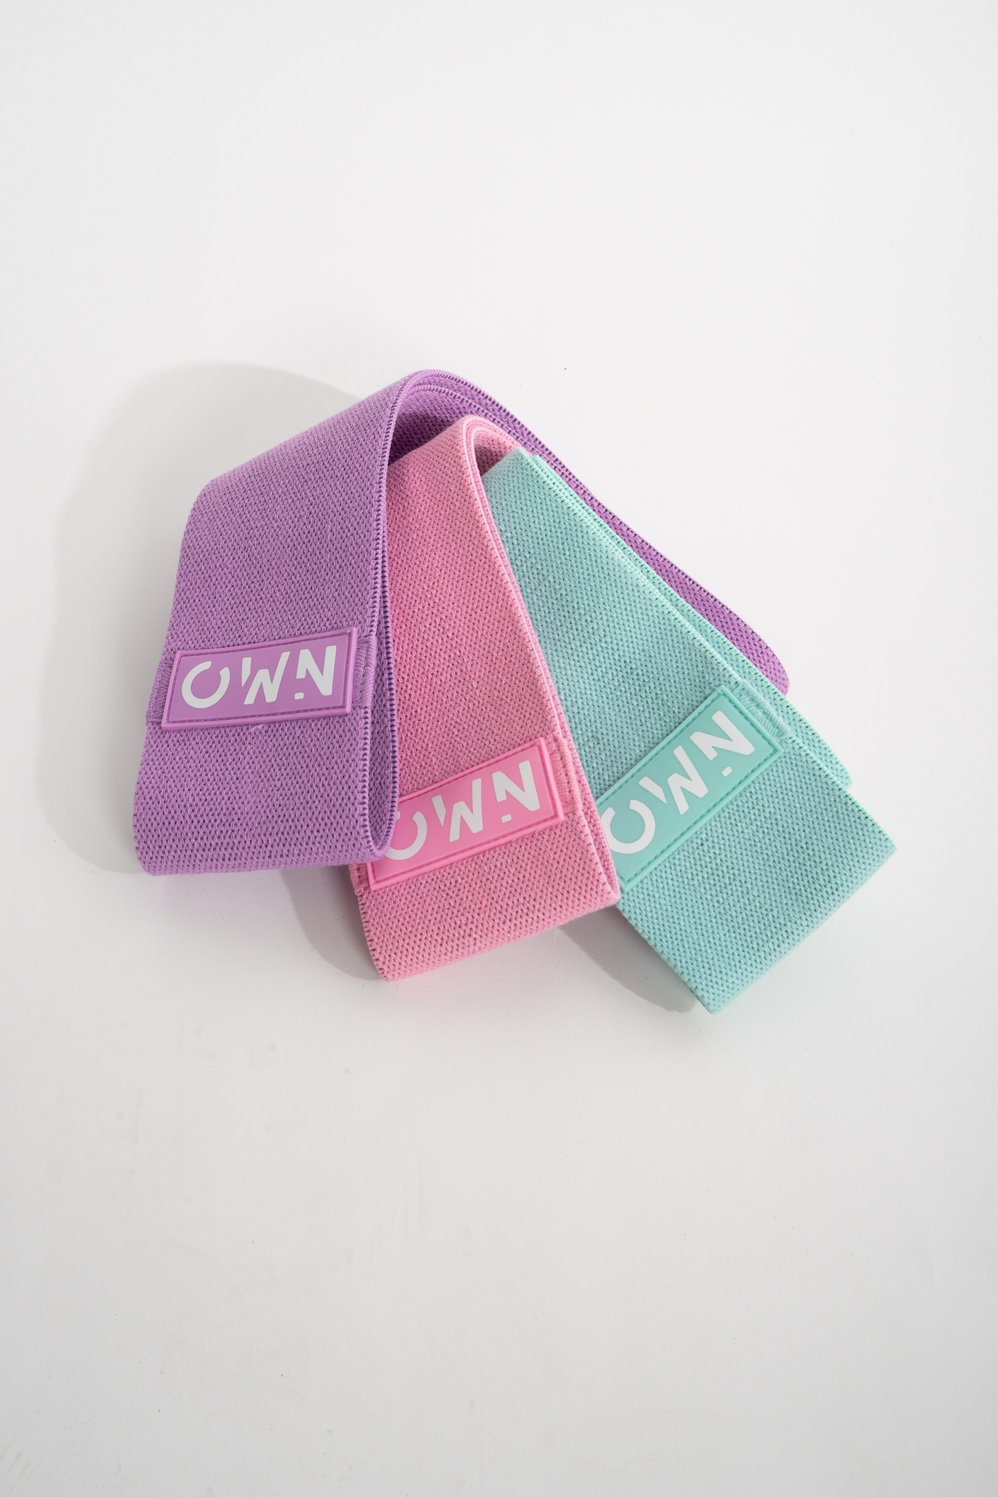 Booty bands - Own-Wear